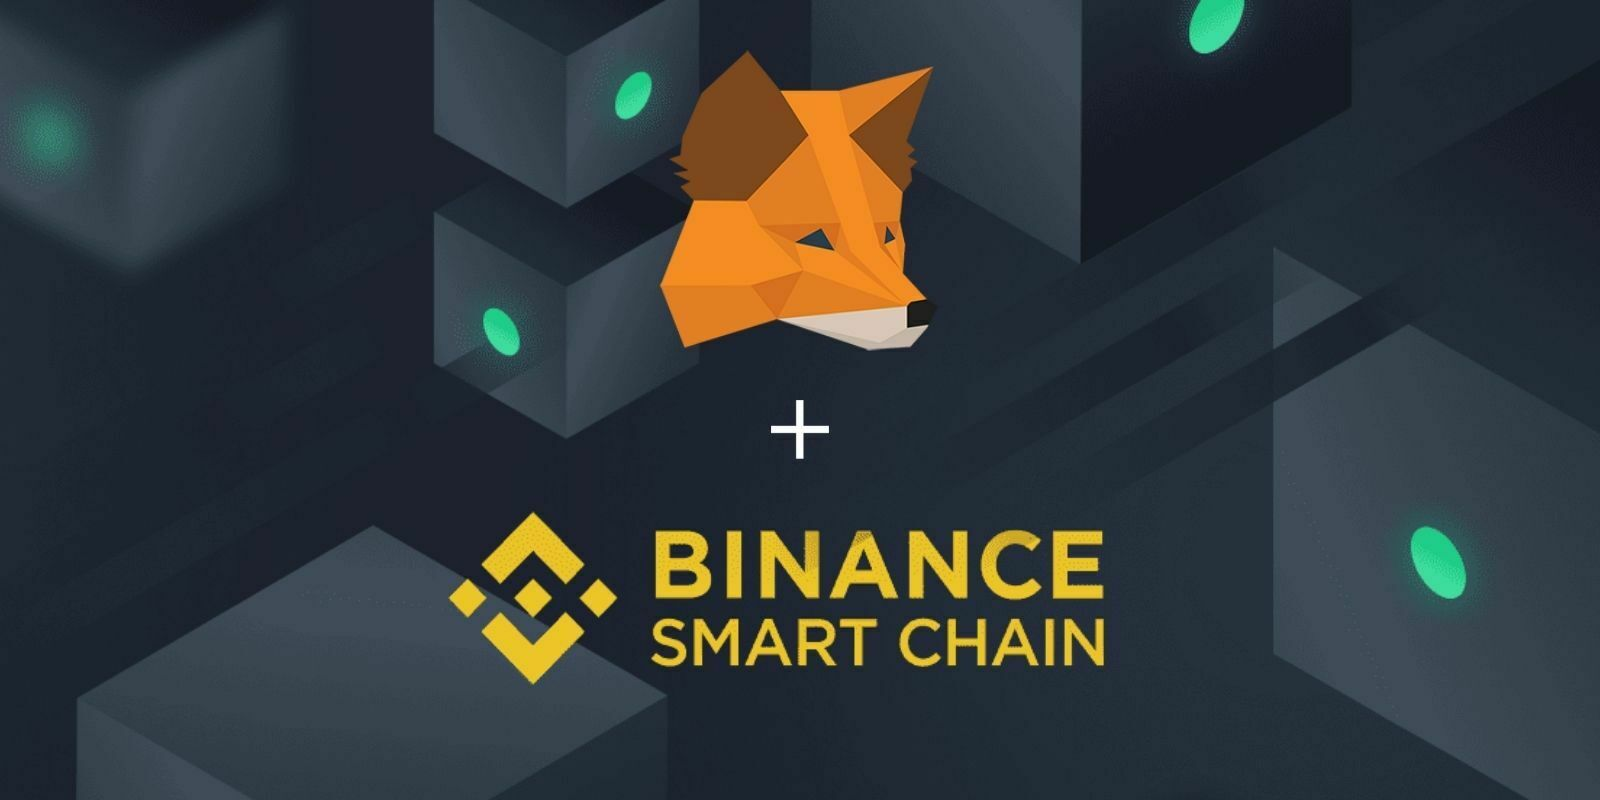 Comment configurer MetaMask pour utiliser la Binance Smart Chain (BSC) ?